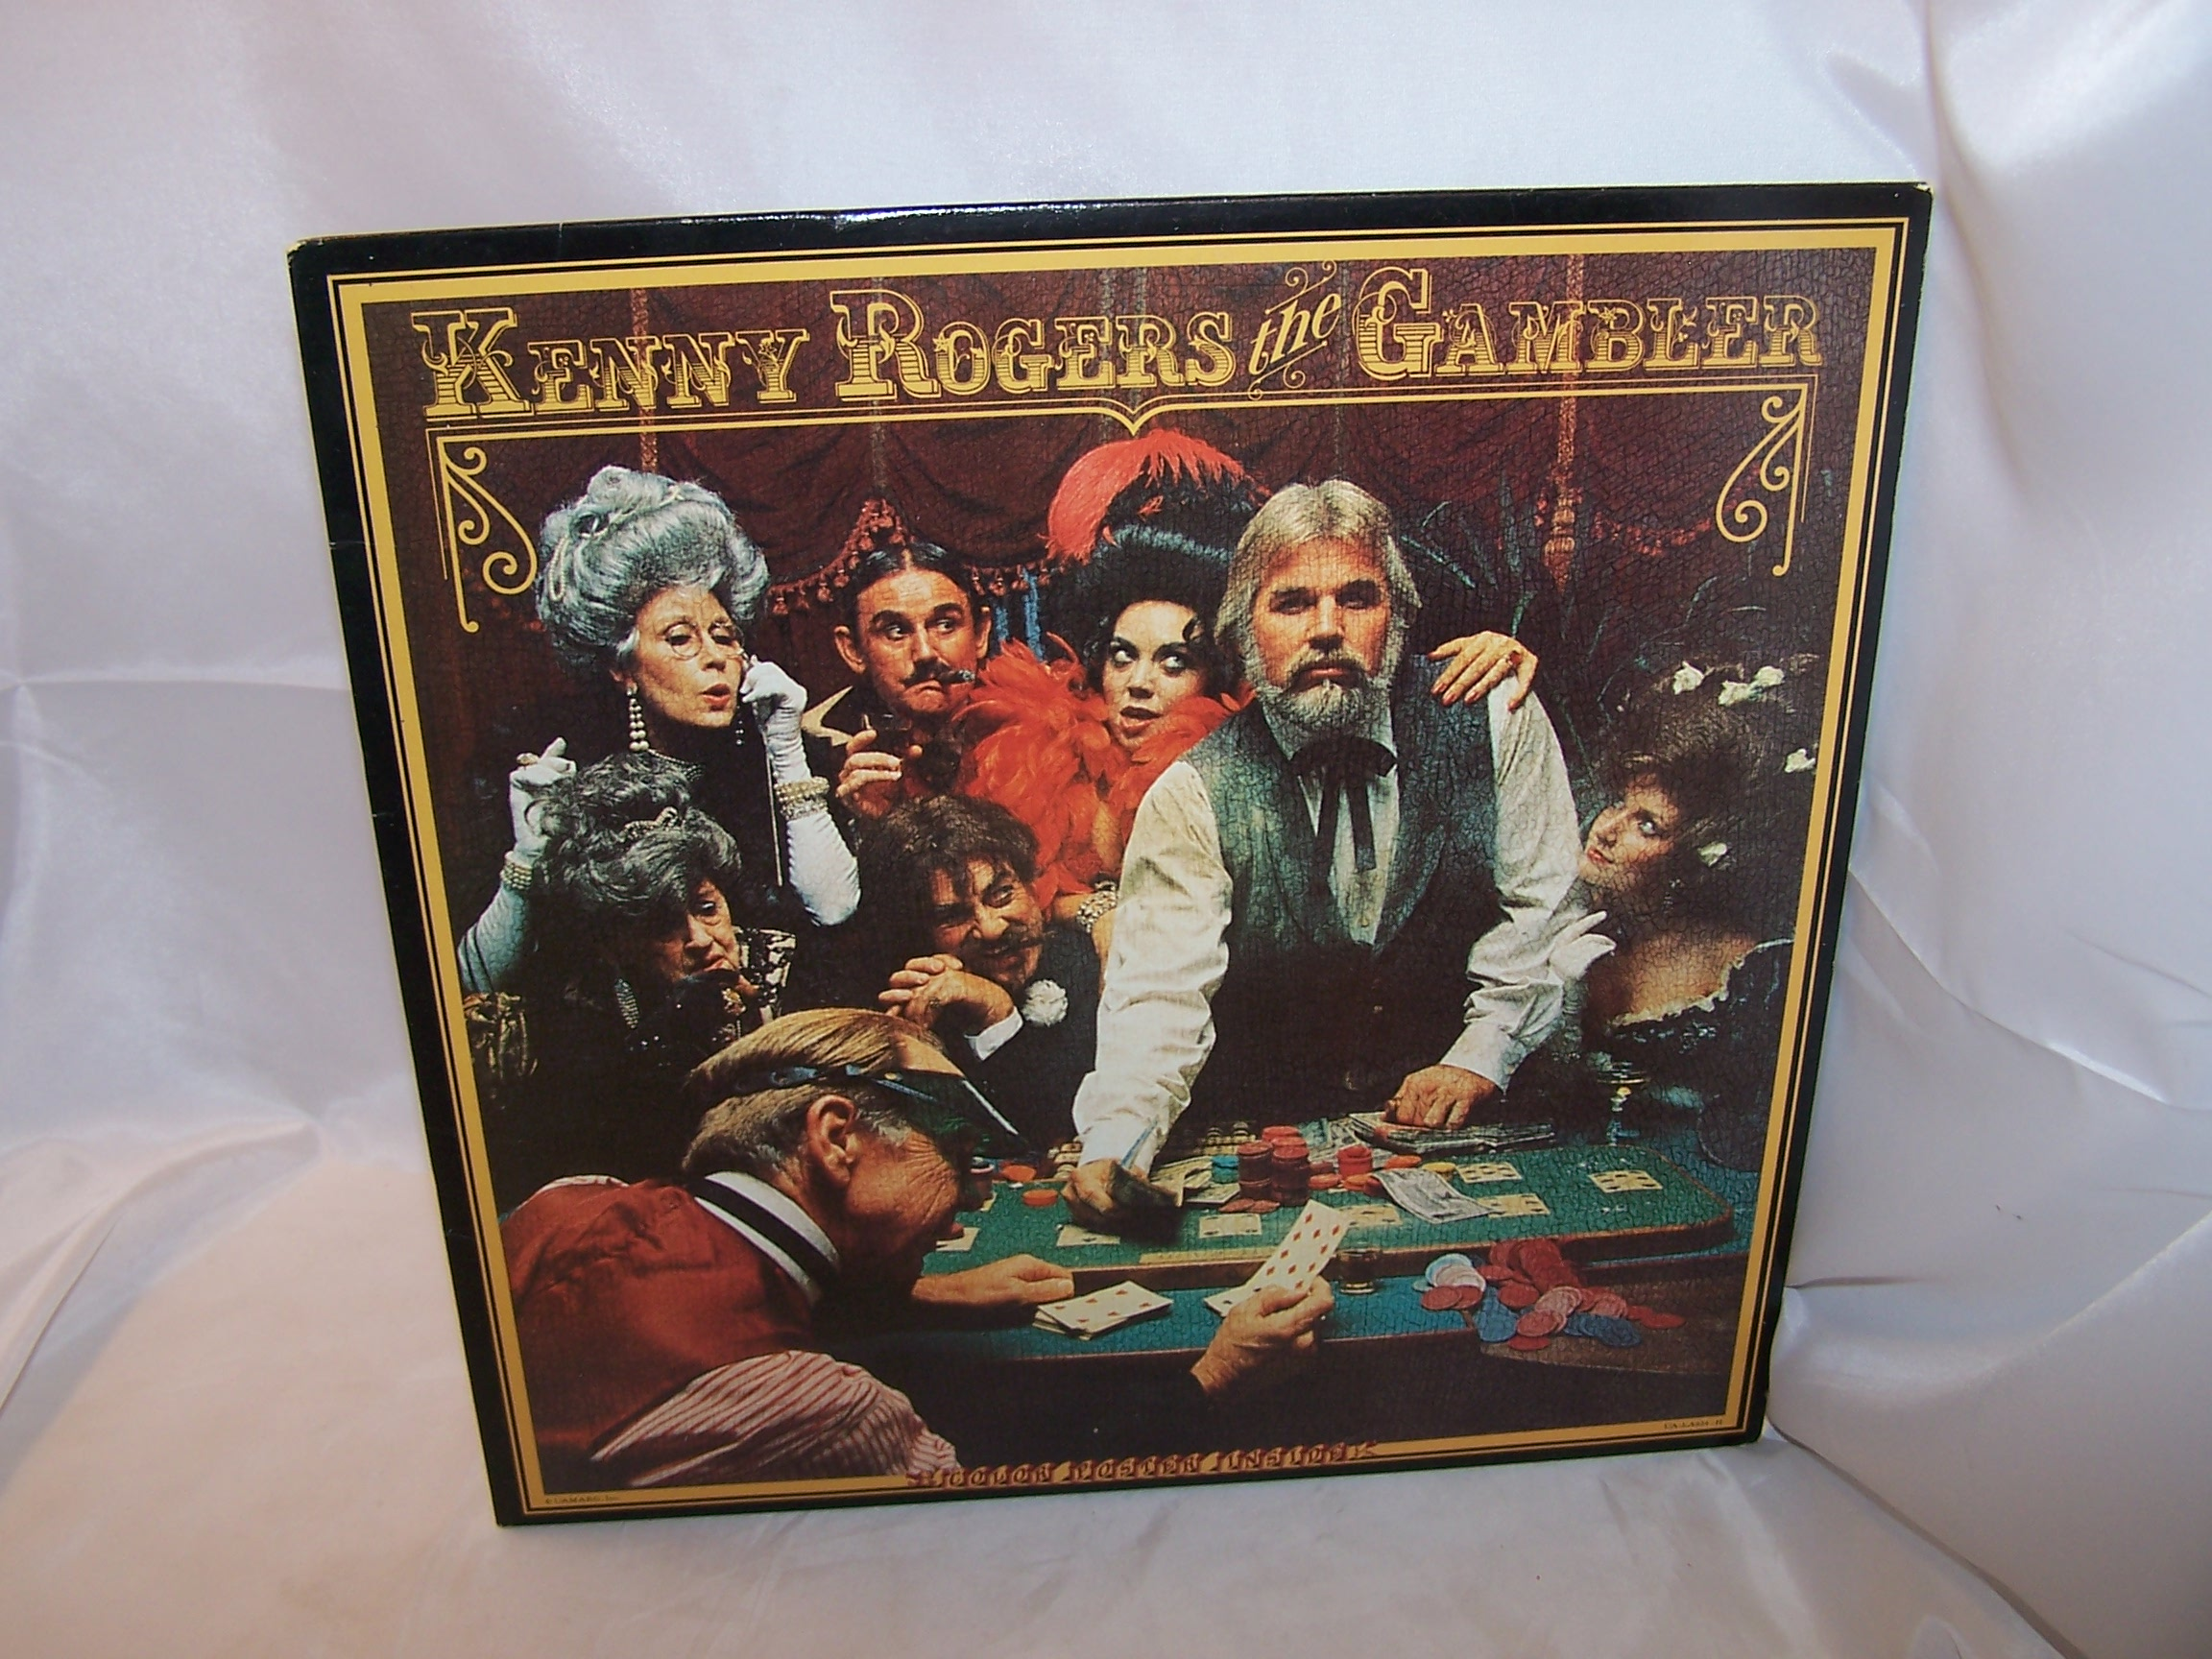 Kenny Rogers The Gambler Record Album, Poster, 1978